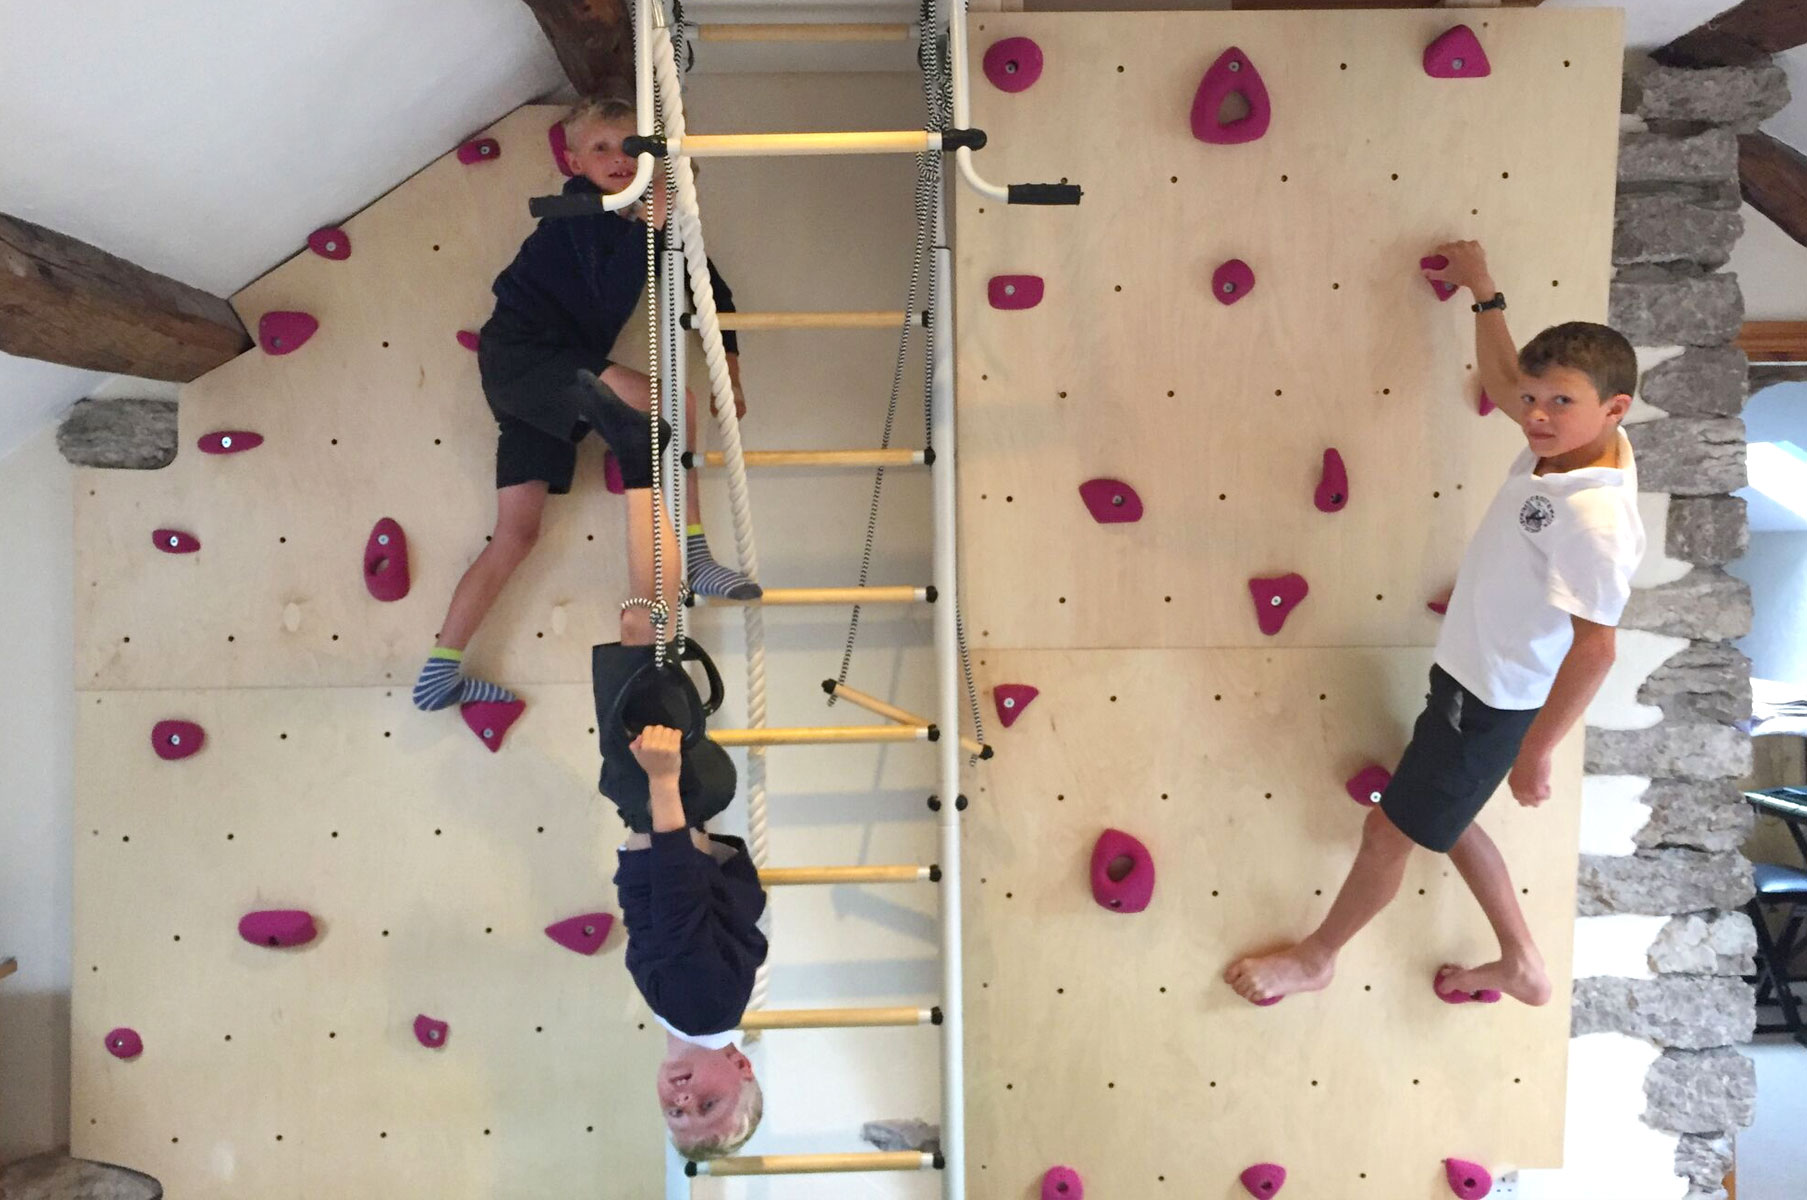 Boys climbing bedroom wall